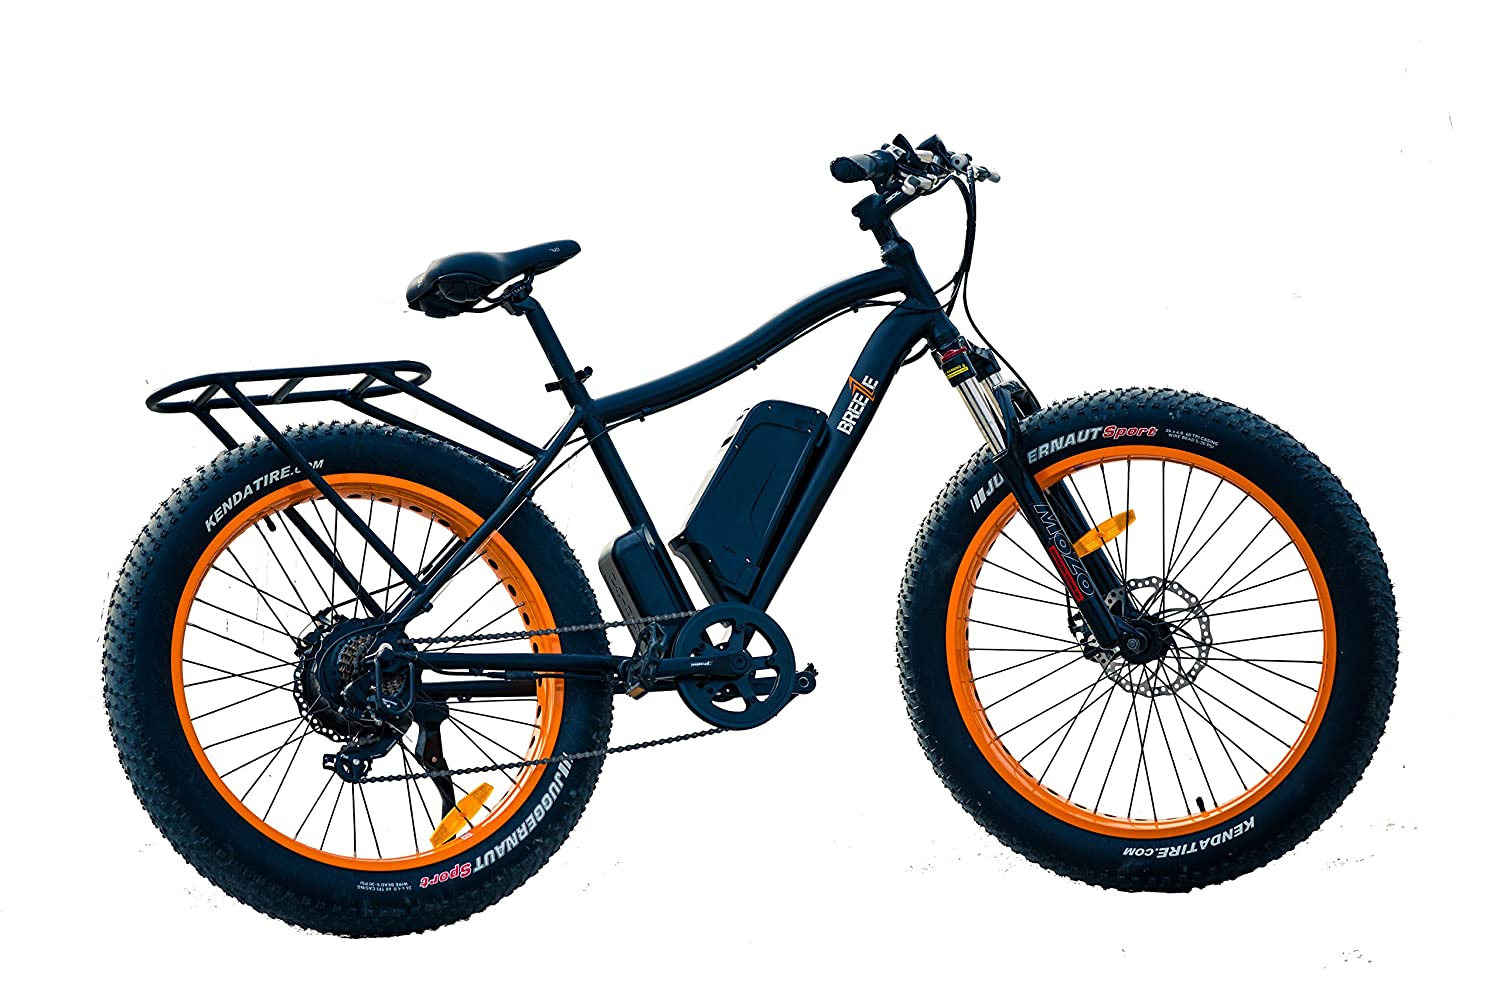 Electric Bike Motor >> Breeze Electric Bike Fat Tire Ebike Mountain Bicycle High Speed 500w Powerful Motor Hand Throttle 10 4ah Samsung Lithium Ion Battery 43 50 Miles